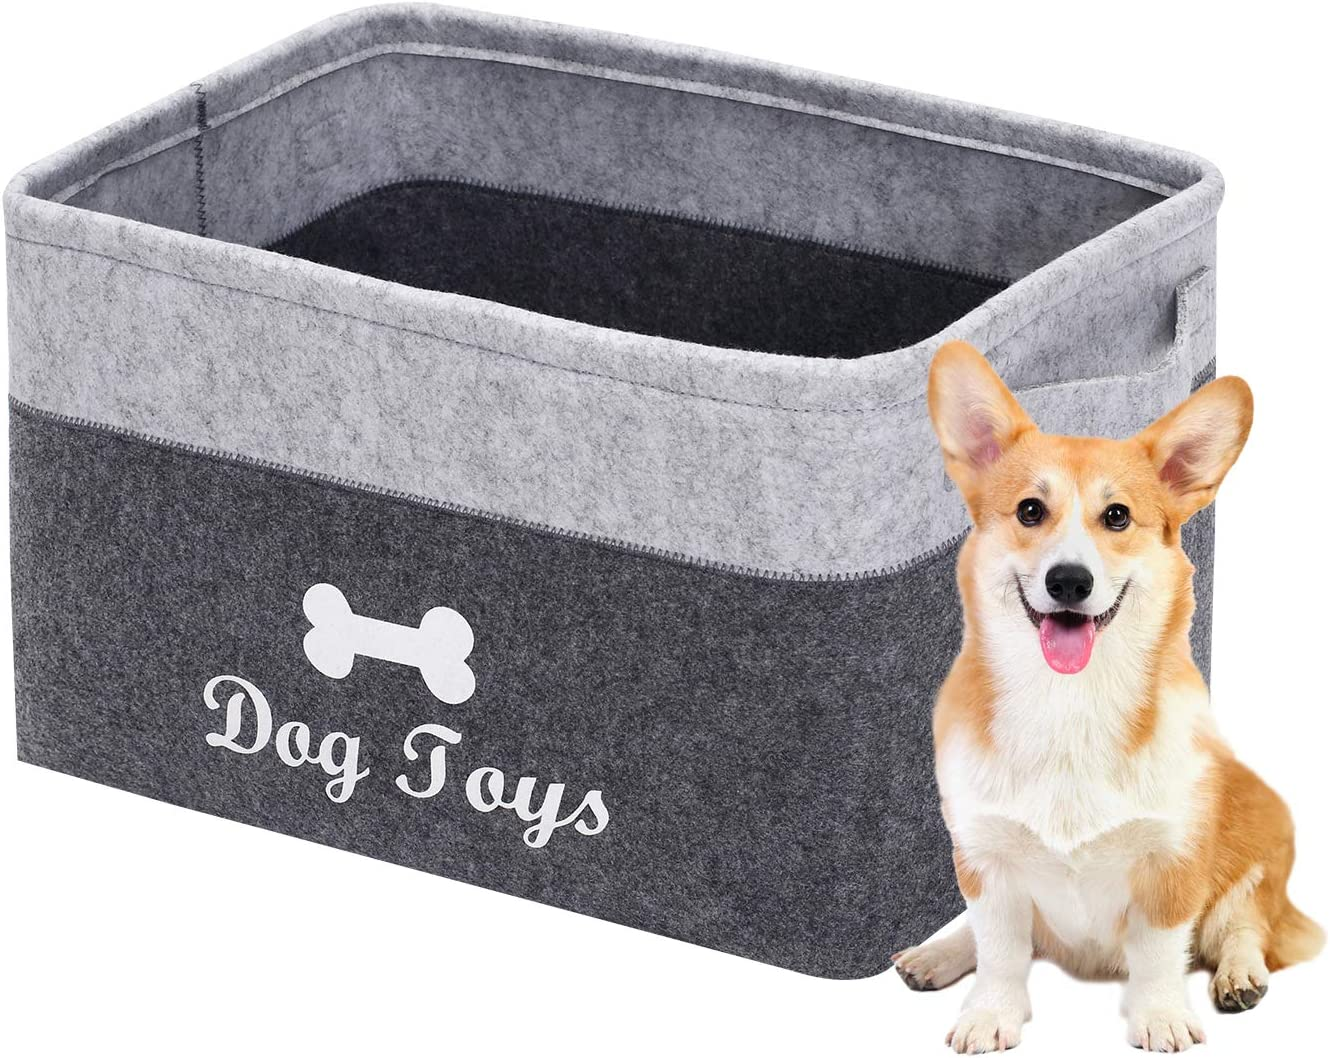 Geyecete Dog Toys Storage Bins All stores are sold - Toy Accessory B Store and Pet